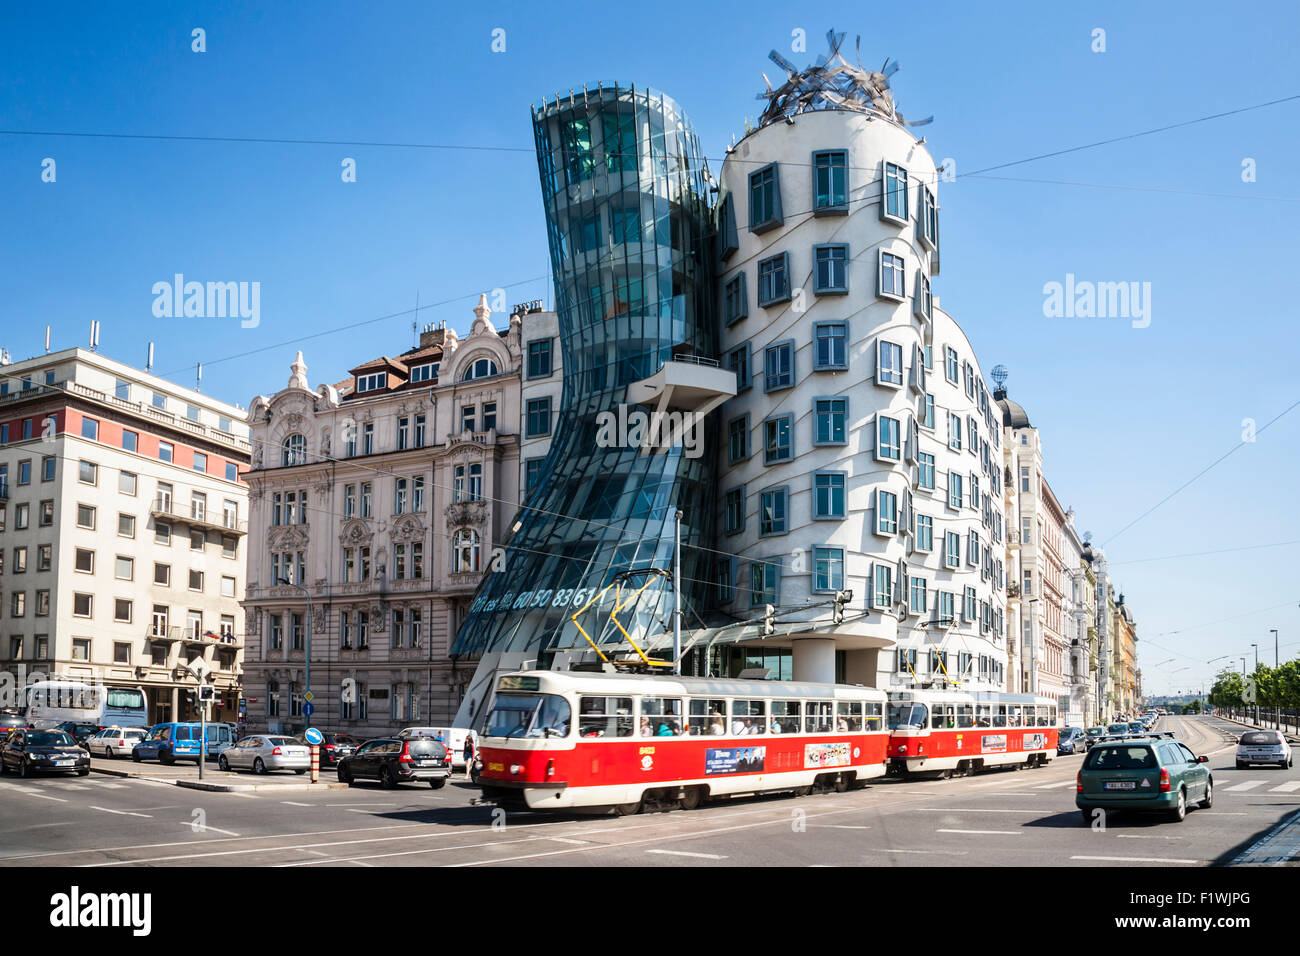 The Dancing House designed by Frank Gehry, Prague, Czech Republic. - Stock Image